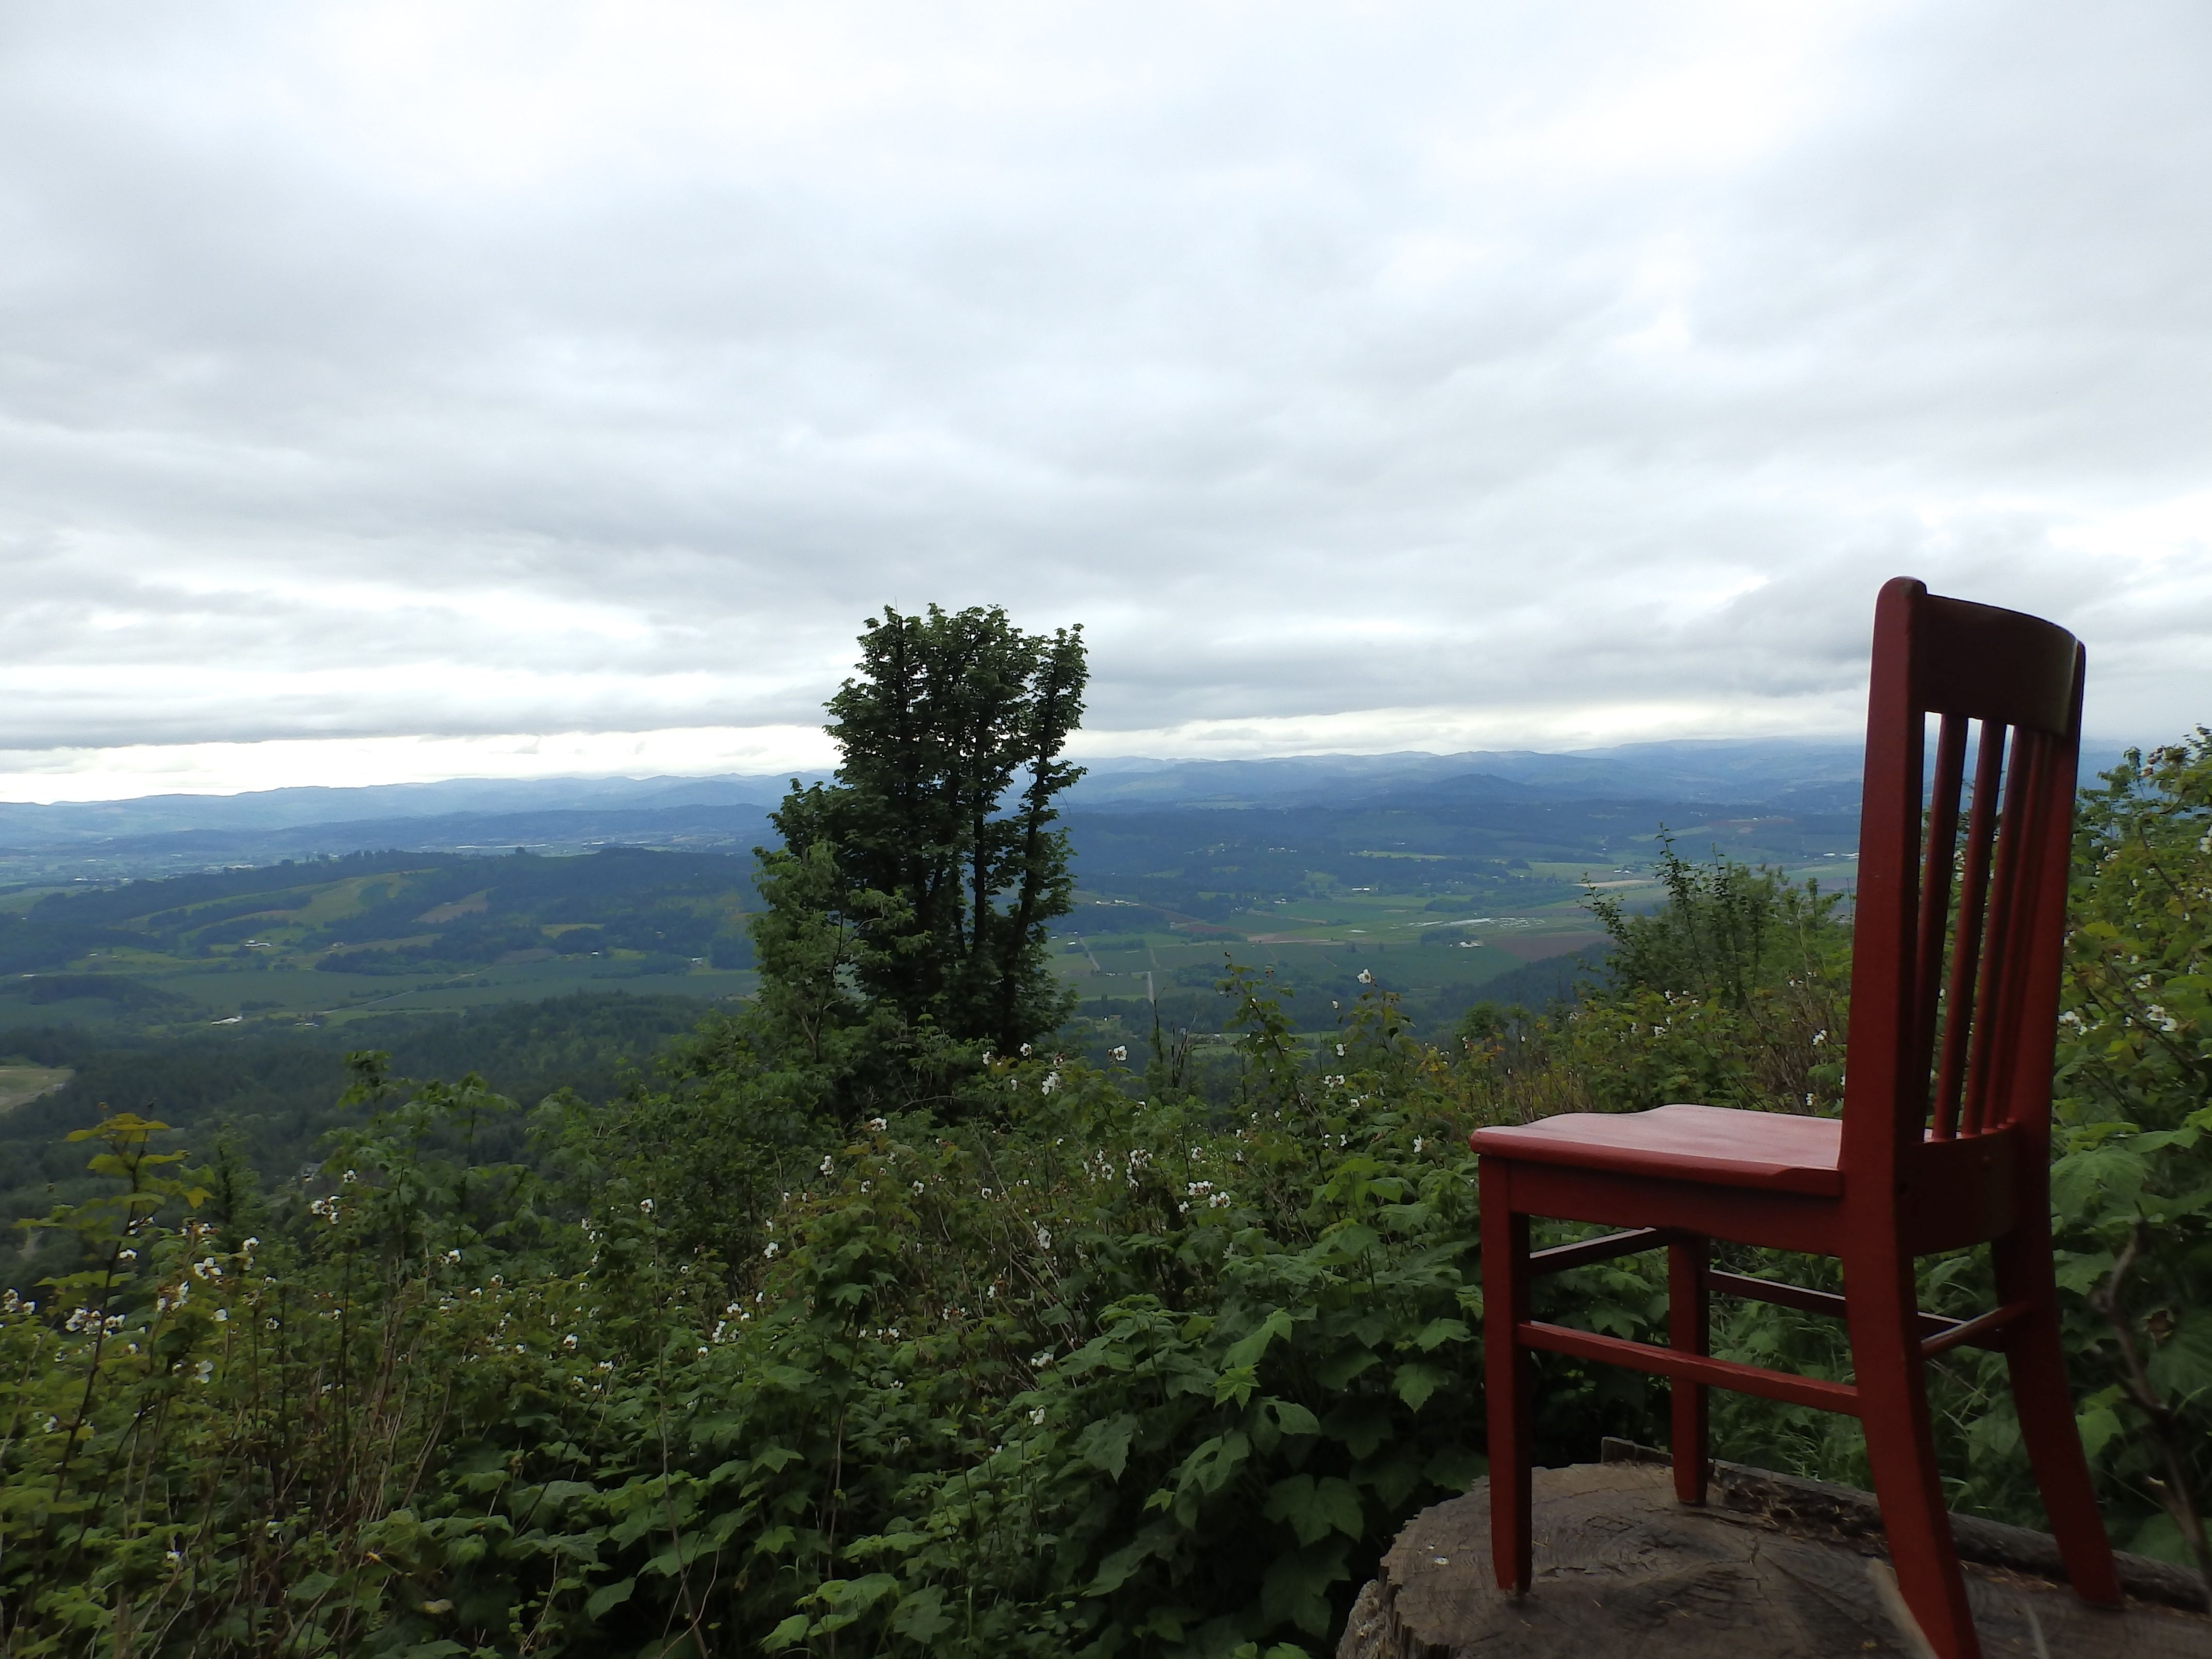 the red chair takes in the views from bald peak state park near